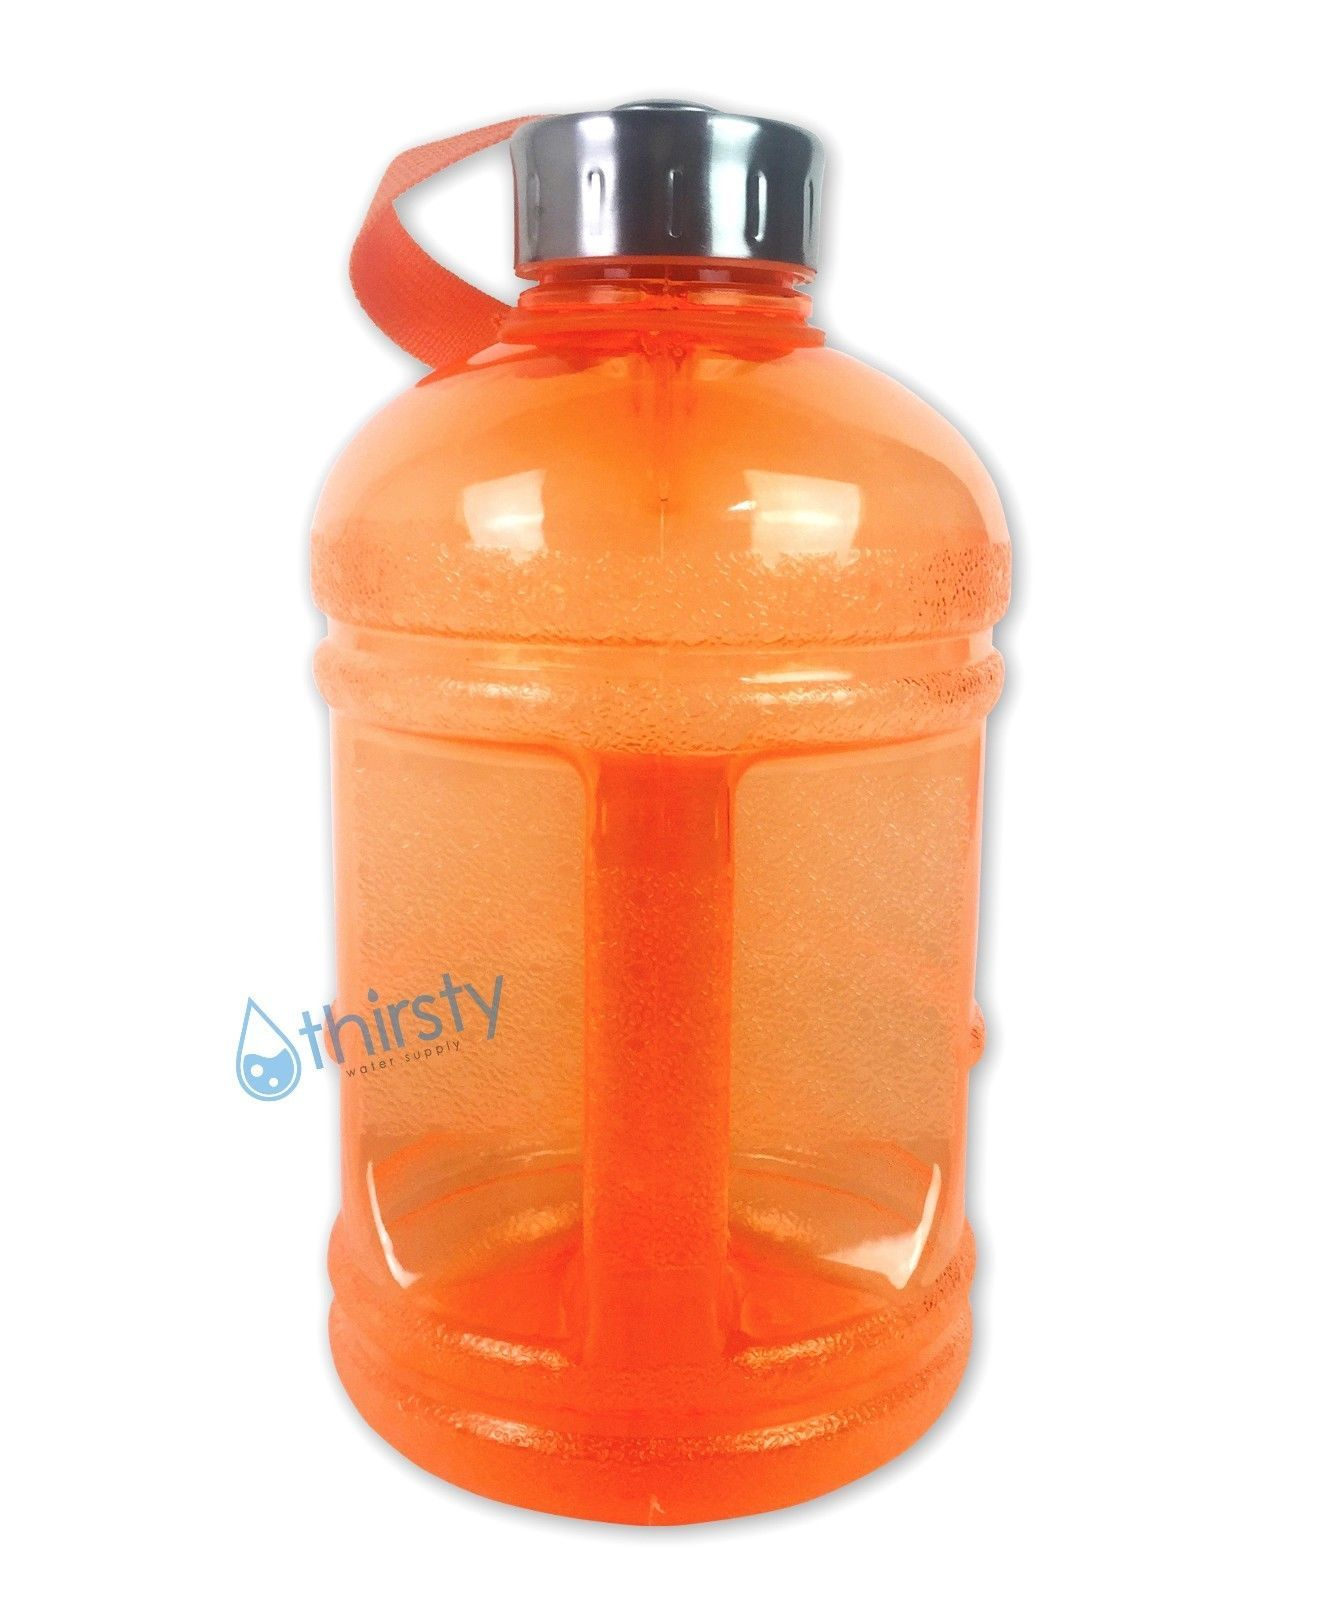 7d0ff1a2fe S l1600. S l1600. Previous. Orange BPA Free Half Gallon Water Bottle  Drinking Jug Canteen Steel Cap 64 oz